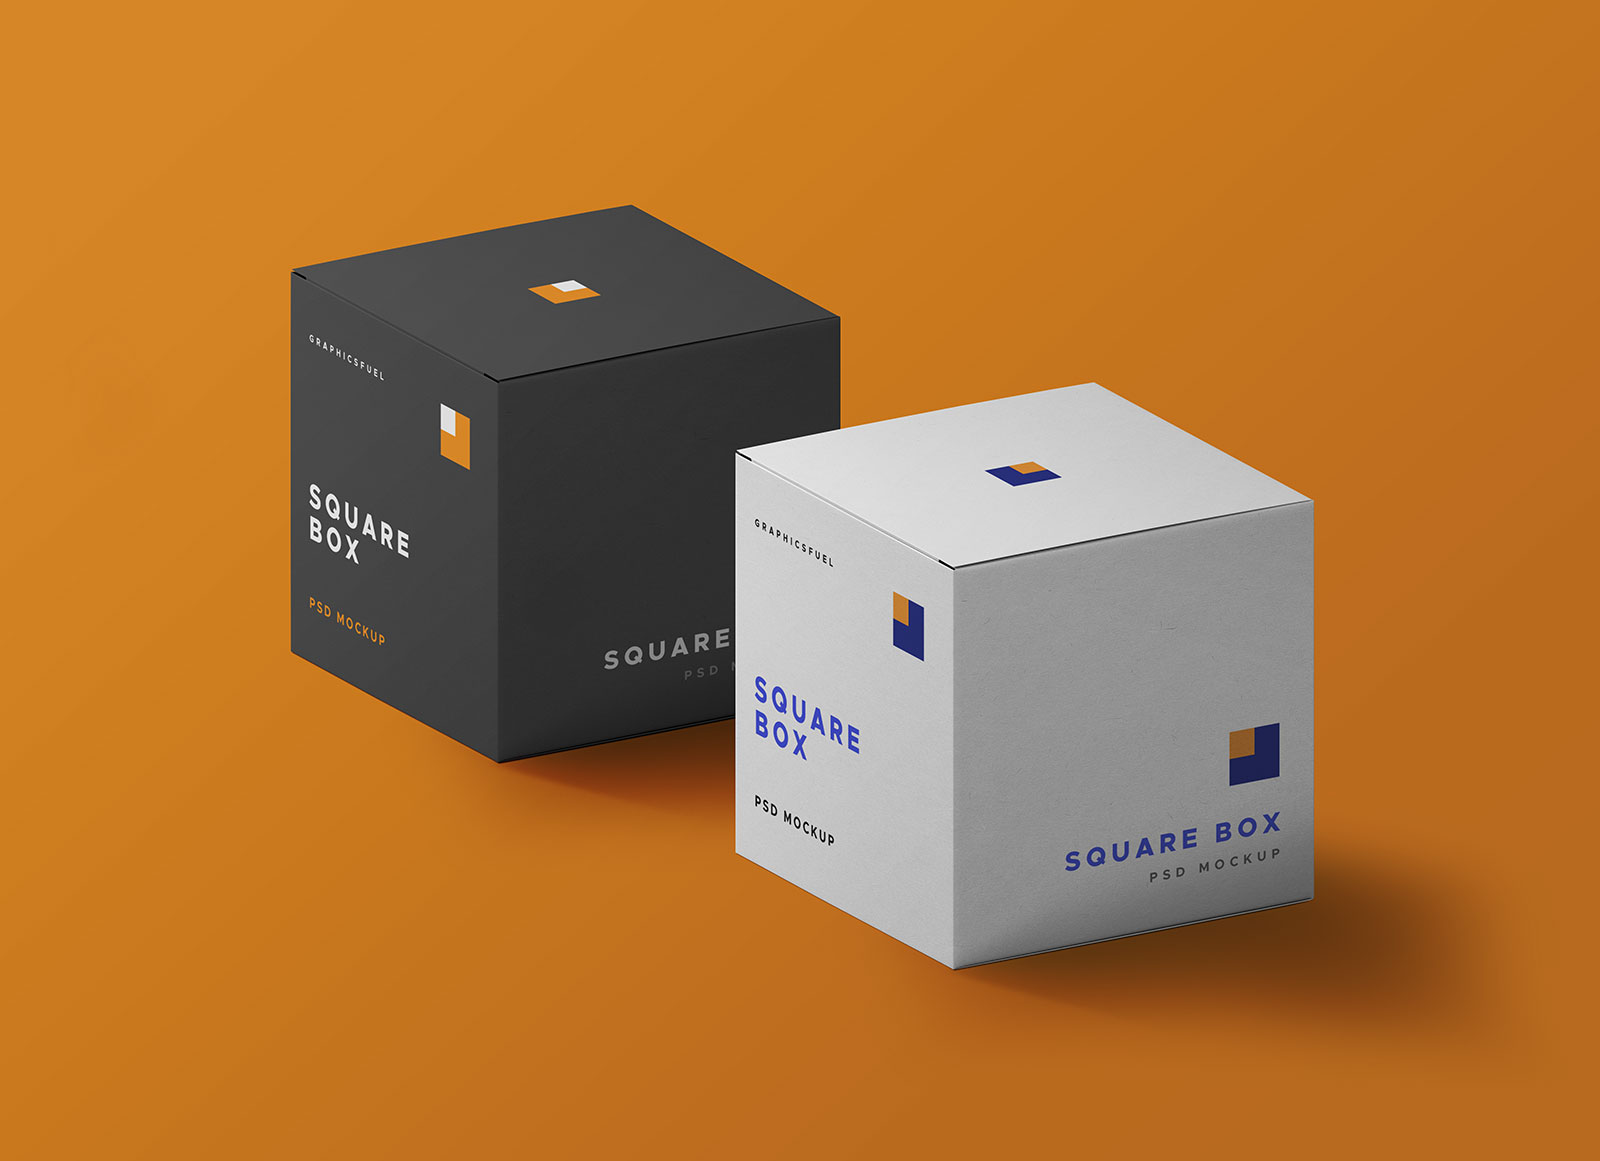 Free Cube Square Box Packaging Mockup Psd Set Packaging Mockup